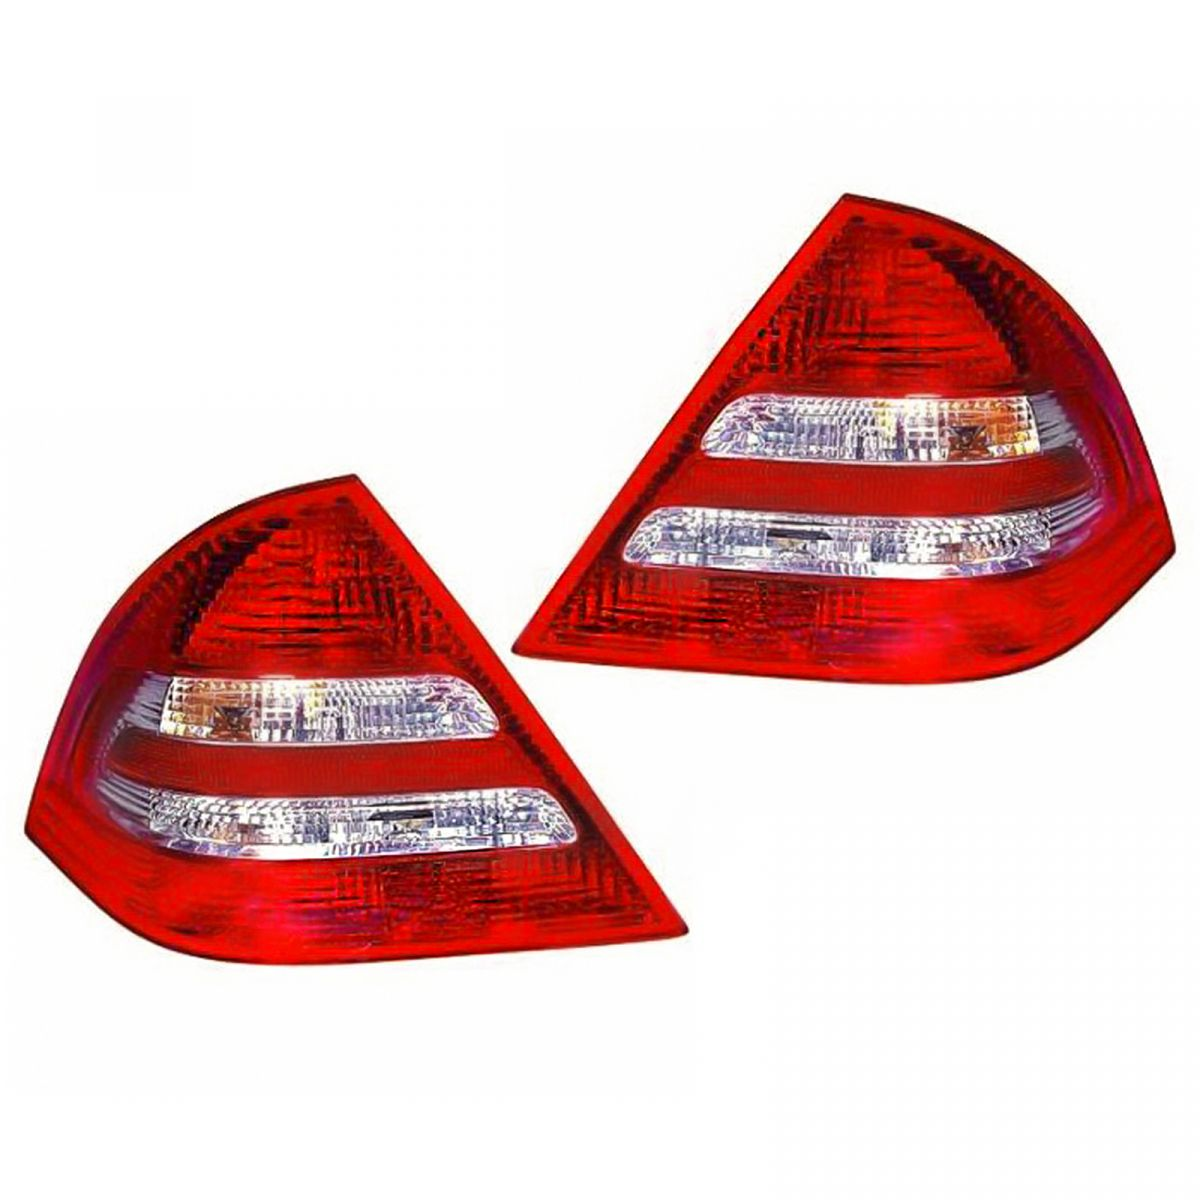 [DIAGRAM_4PO]  Rear Brake Lights Taillights Taillamps Pair Set for Mercedes Benz C Class  Sedan | eBay | Mercedes Benz C280 4matic 2007 Side Markers Repair Wire Harness |  | eBay